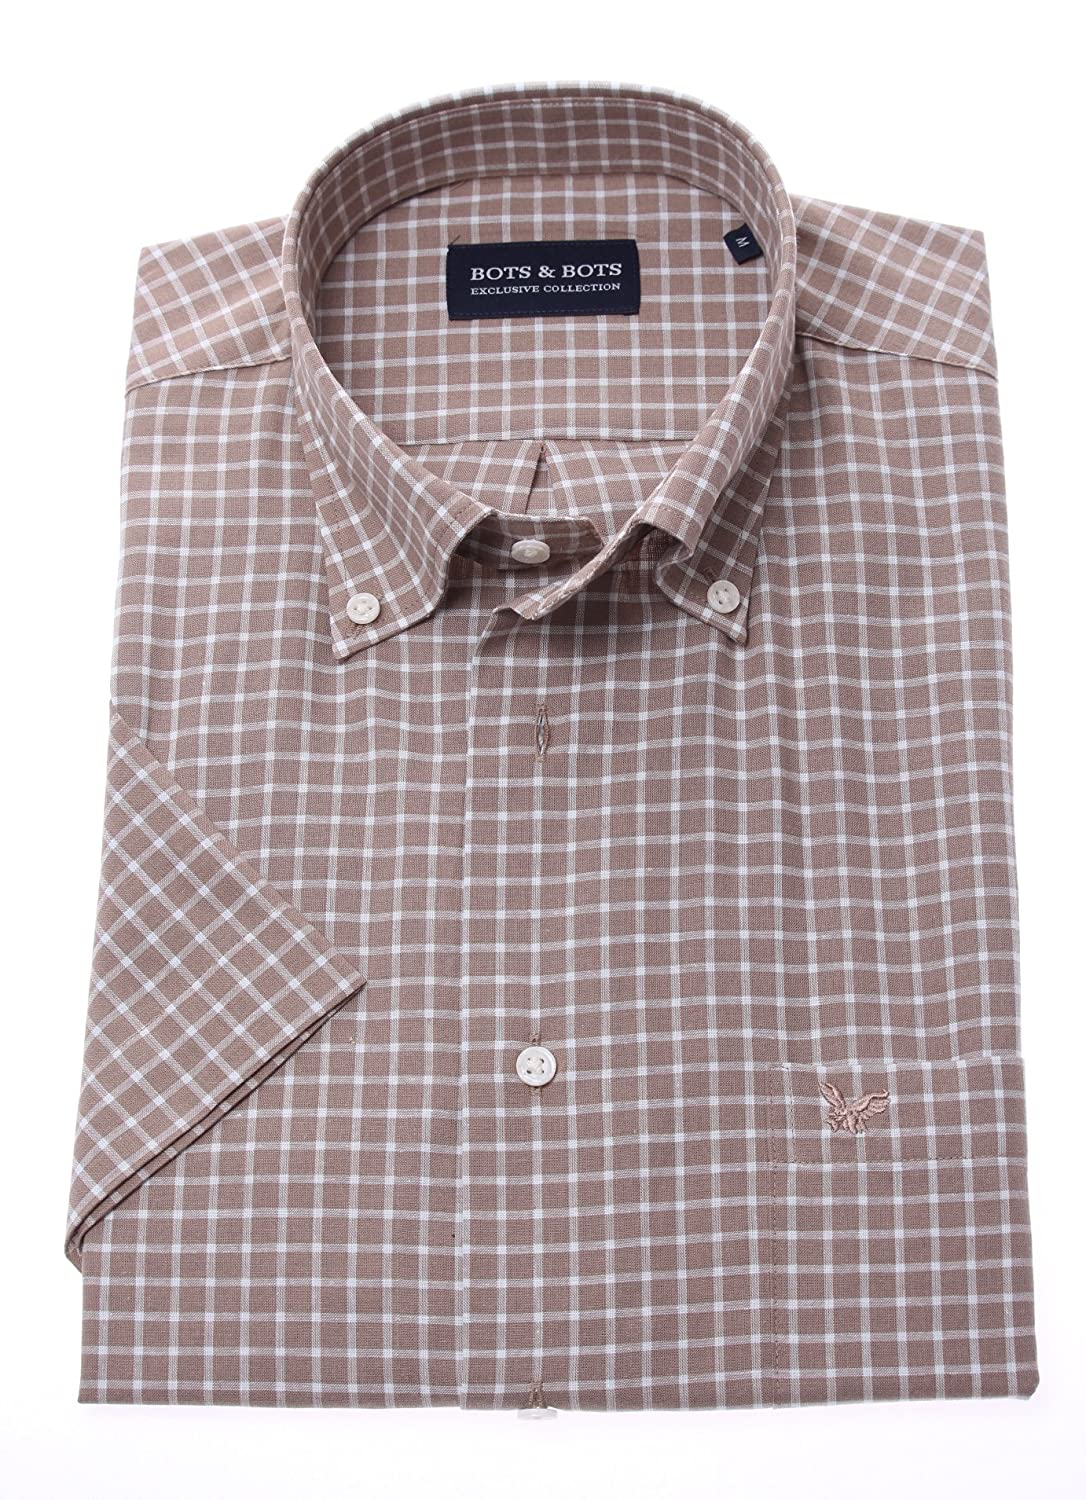 Bots & Bots 178617 Camisa para Hombre - Manga Corta - 70% Cotton / 30% Lino - Button Down - Normal Fit